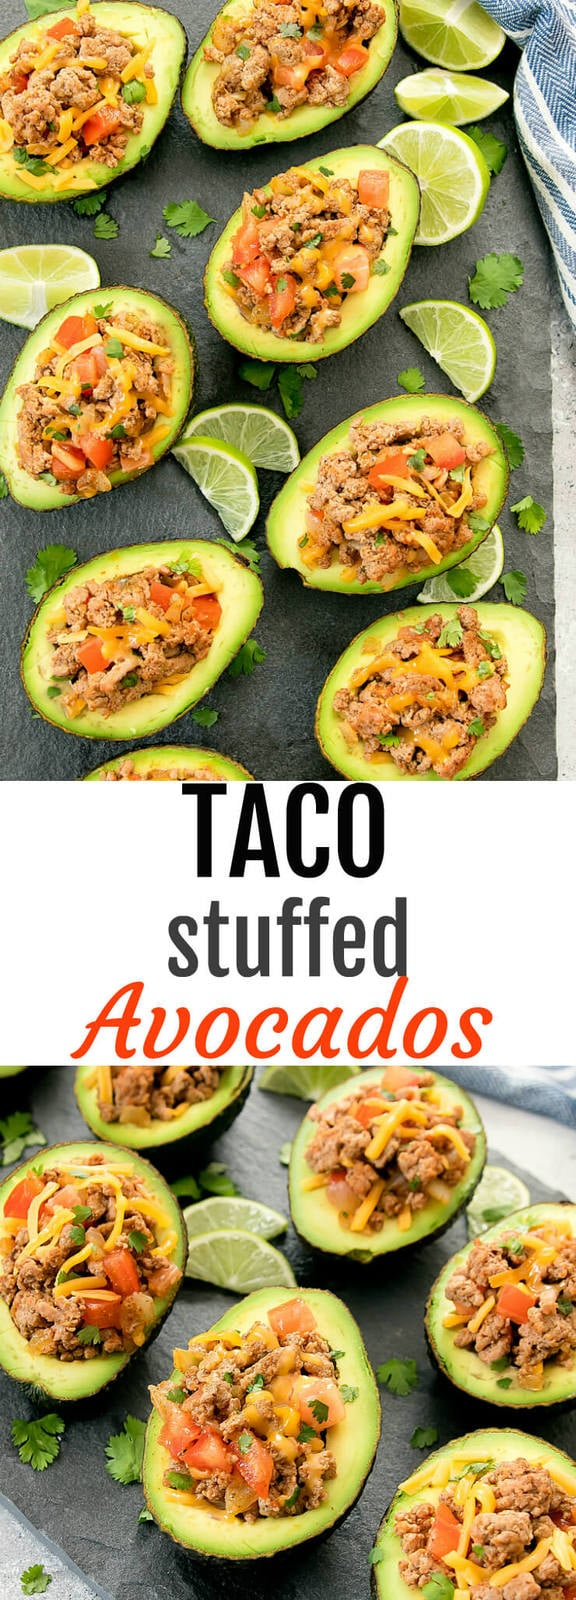 Taco Stuffed Avocados. A healthier take on tacos, stuffing avocados with homemade ground turkey taco filling.